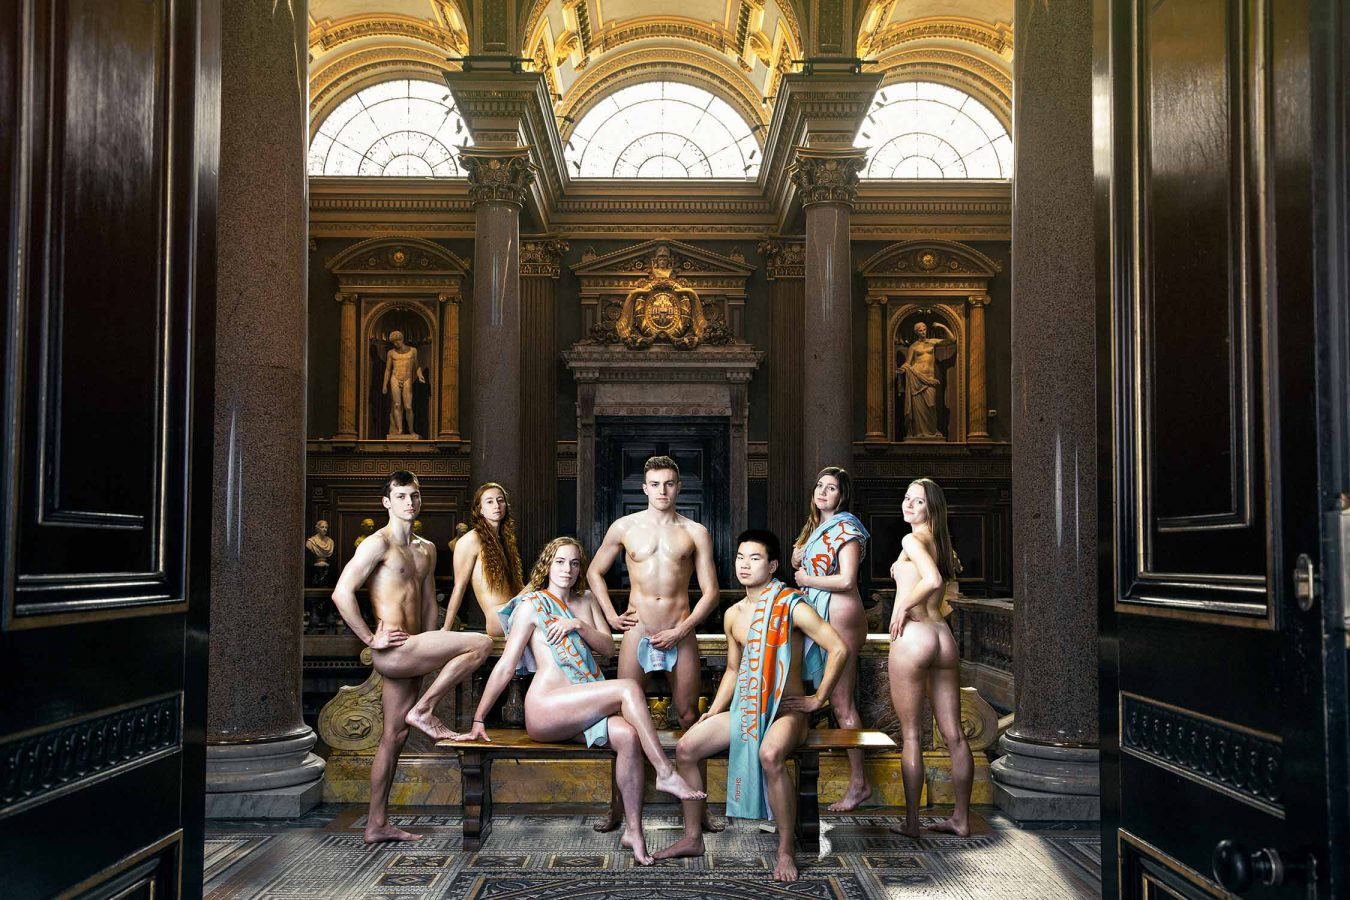 The University of Cambridge naked calendar 2021 Fitzwilliam museum swim team.